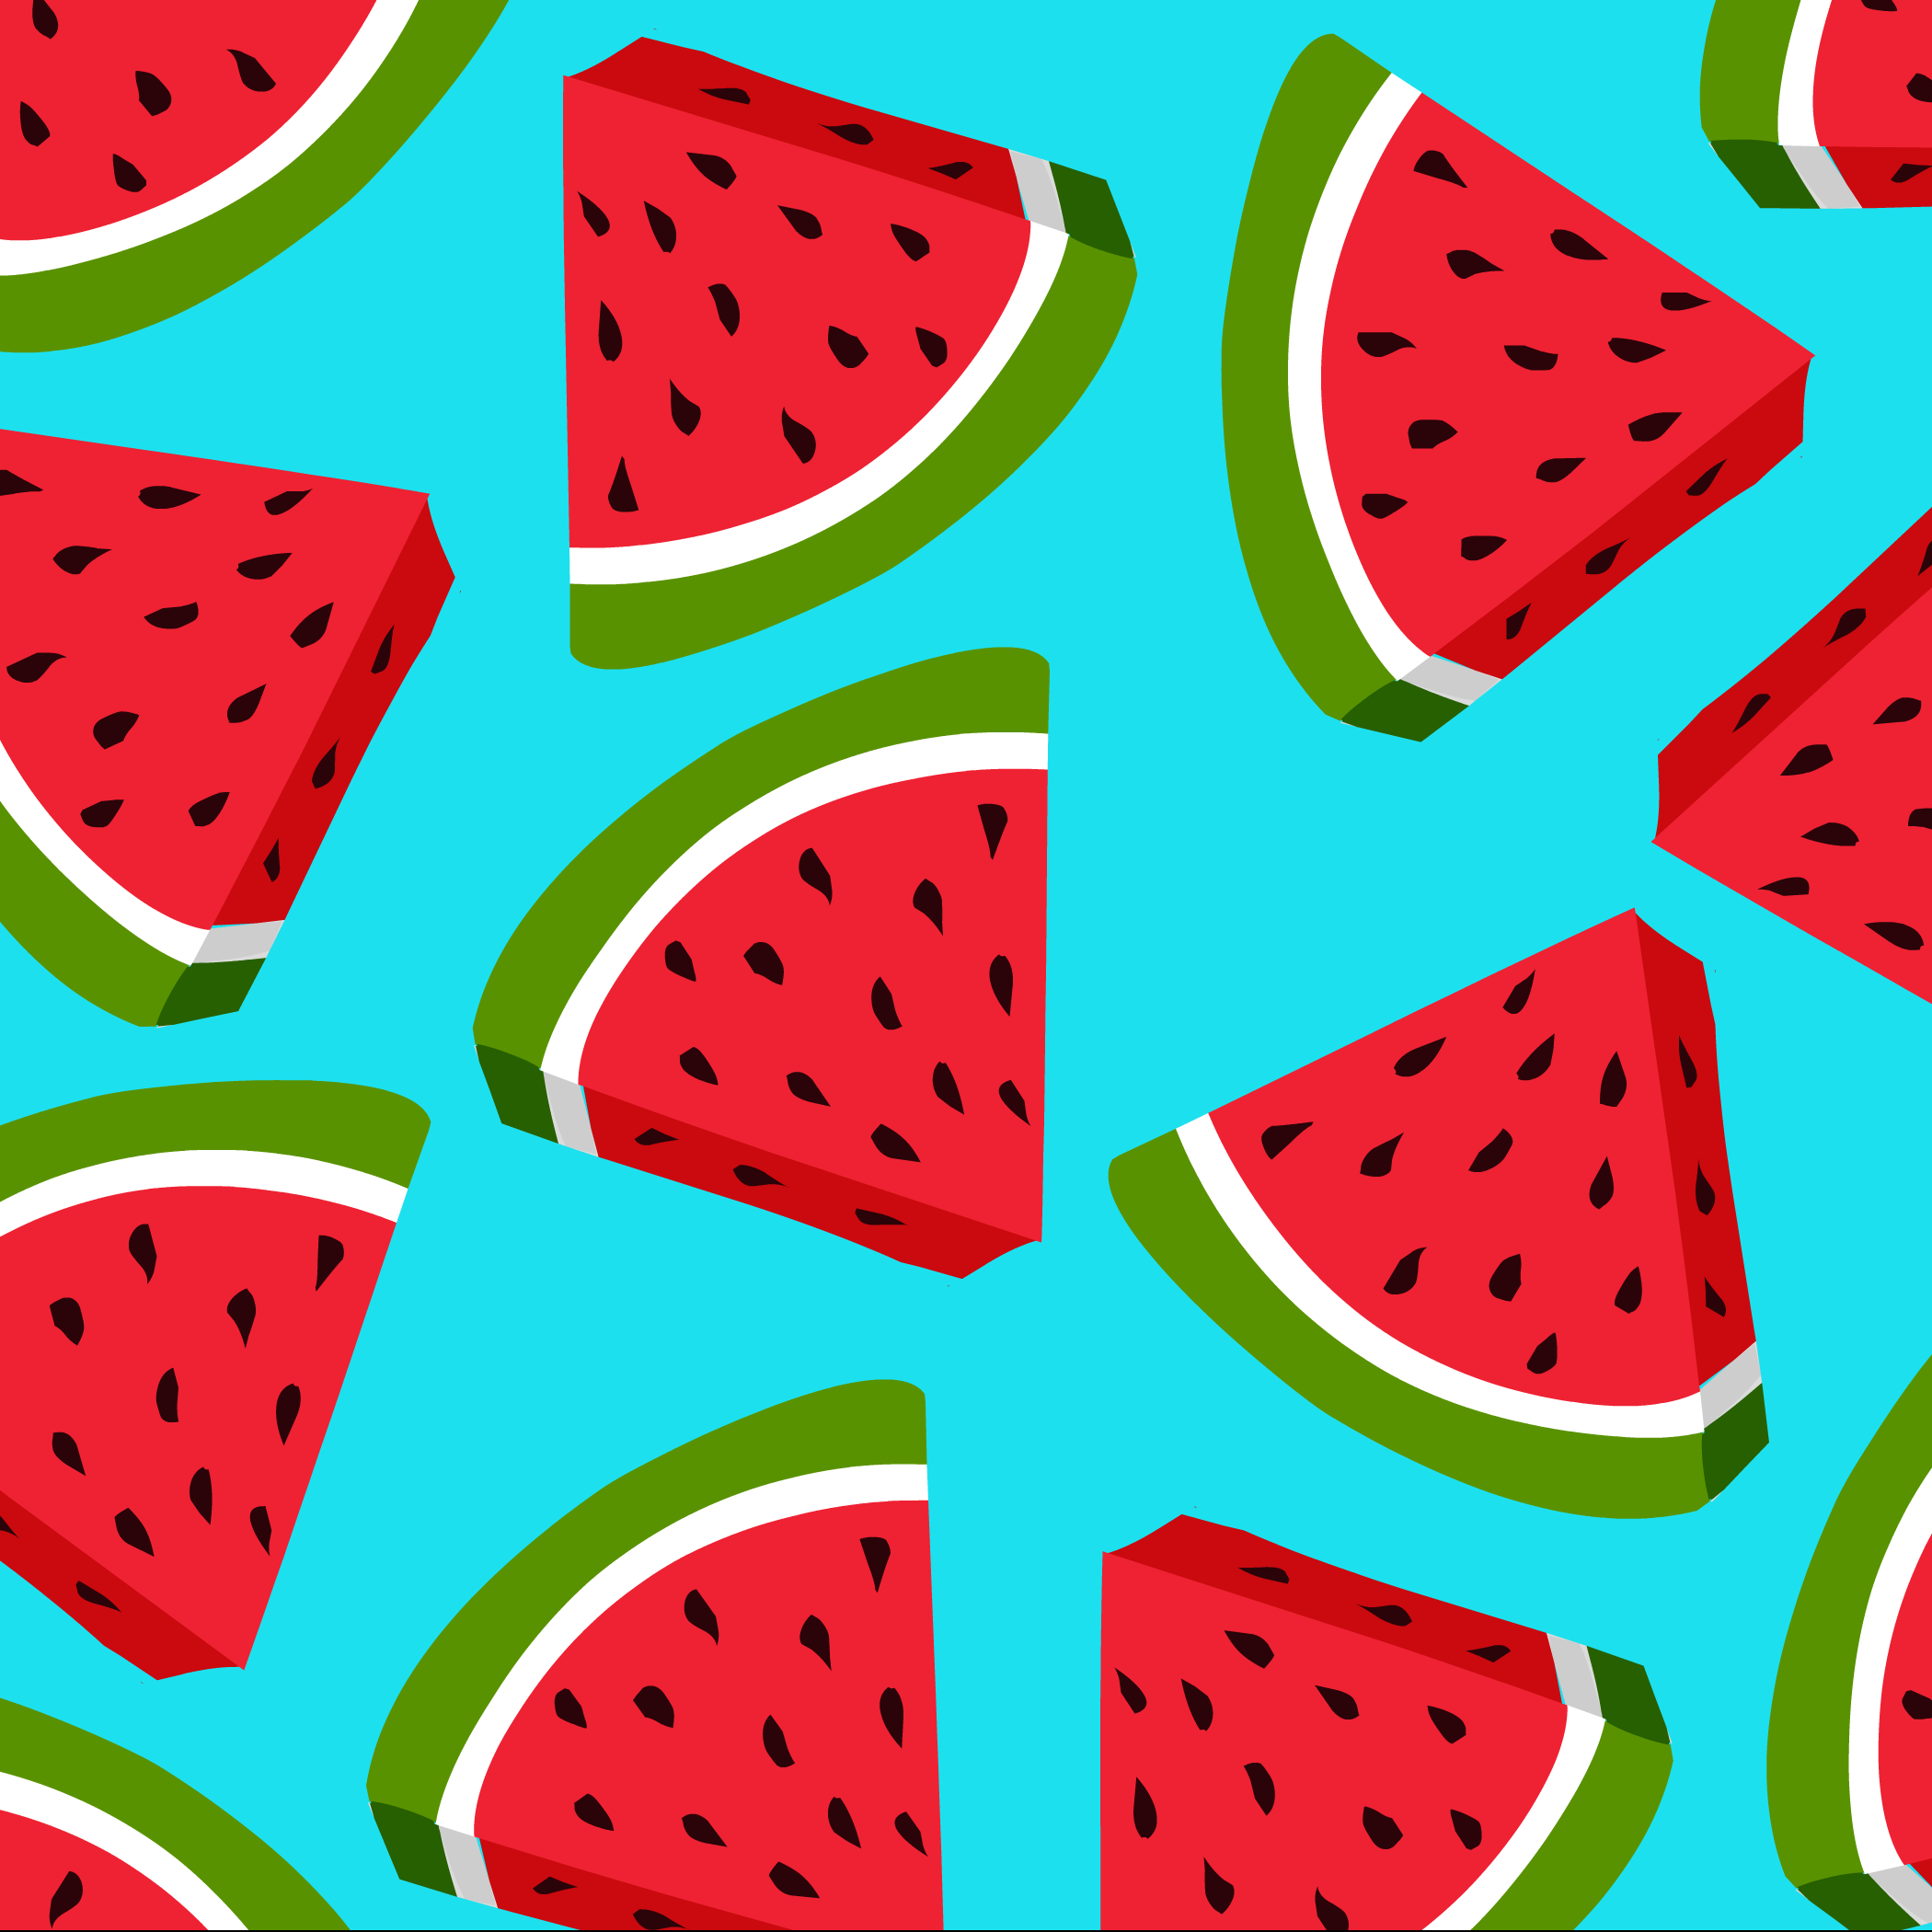 2100x2100 Watermelon Clipart Background Amp Watermelon Clip Art Background